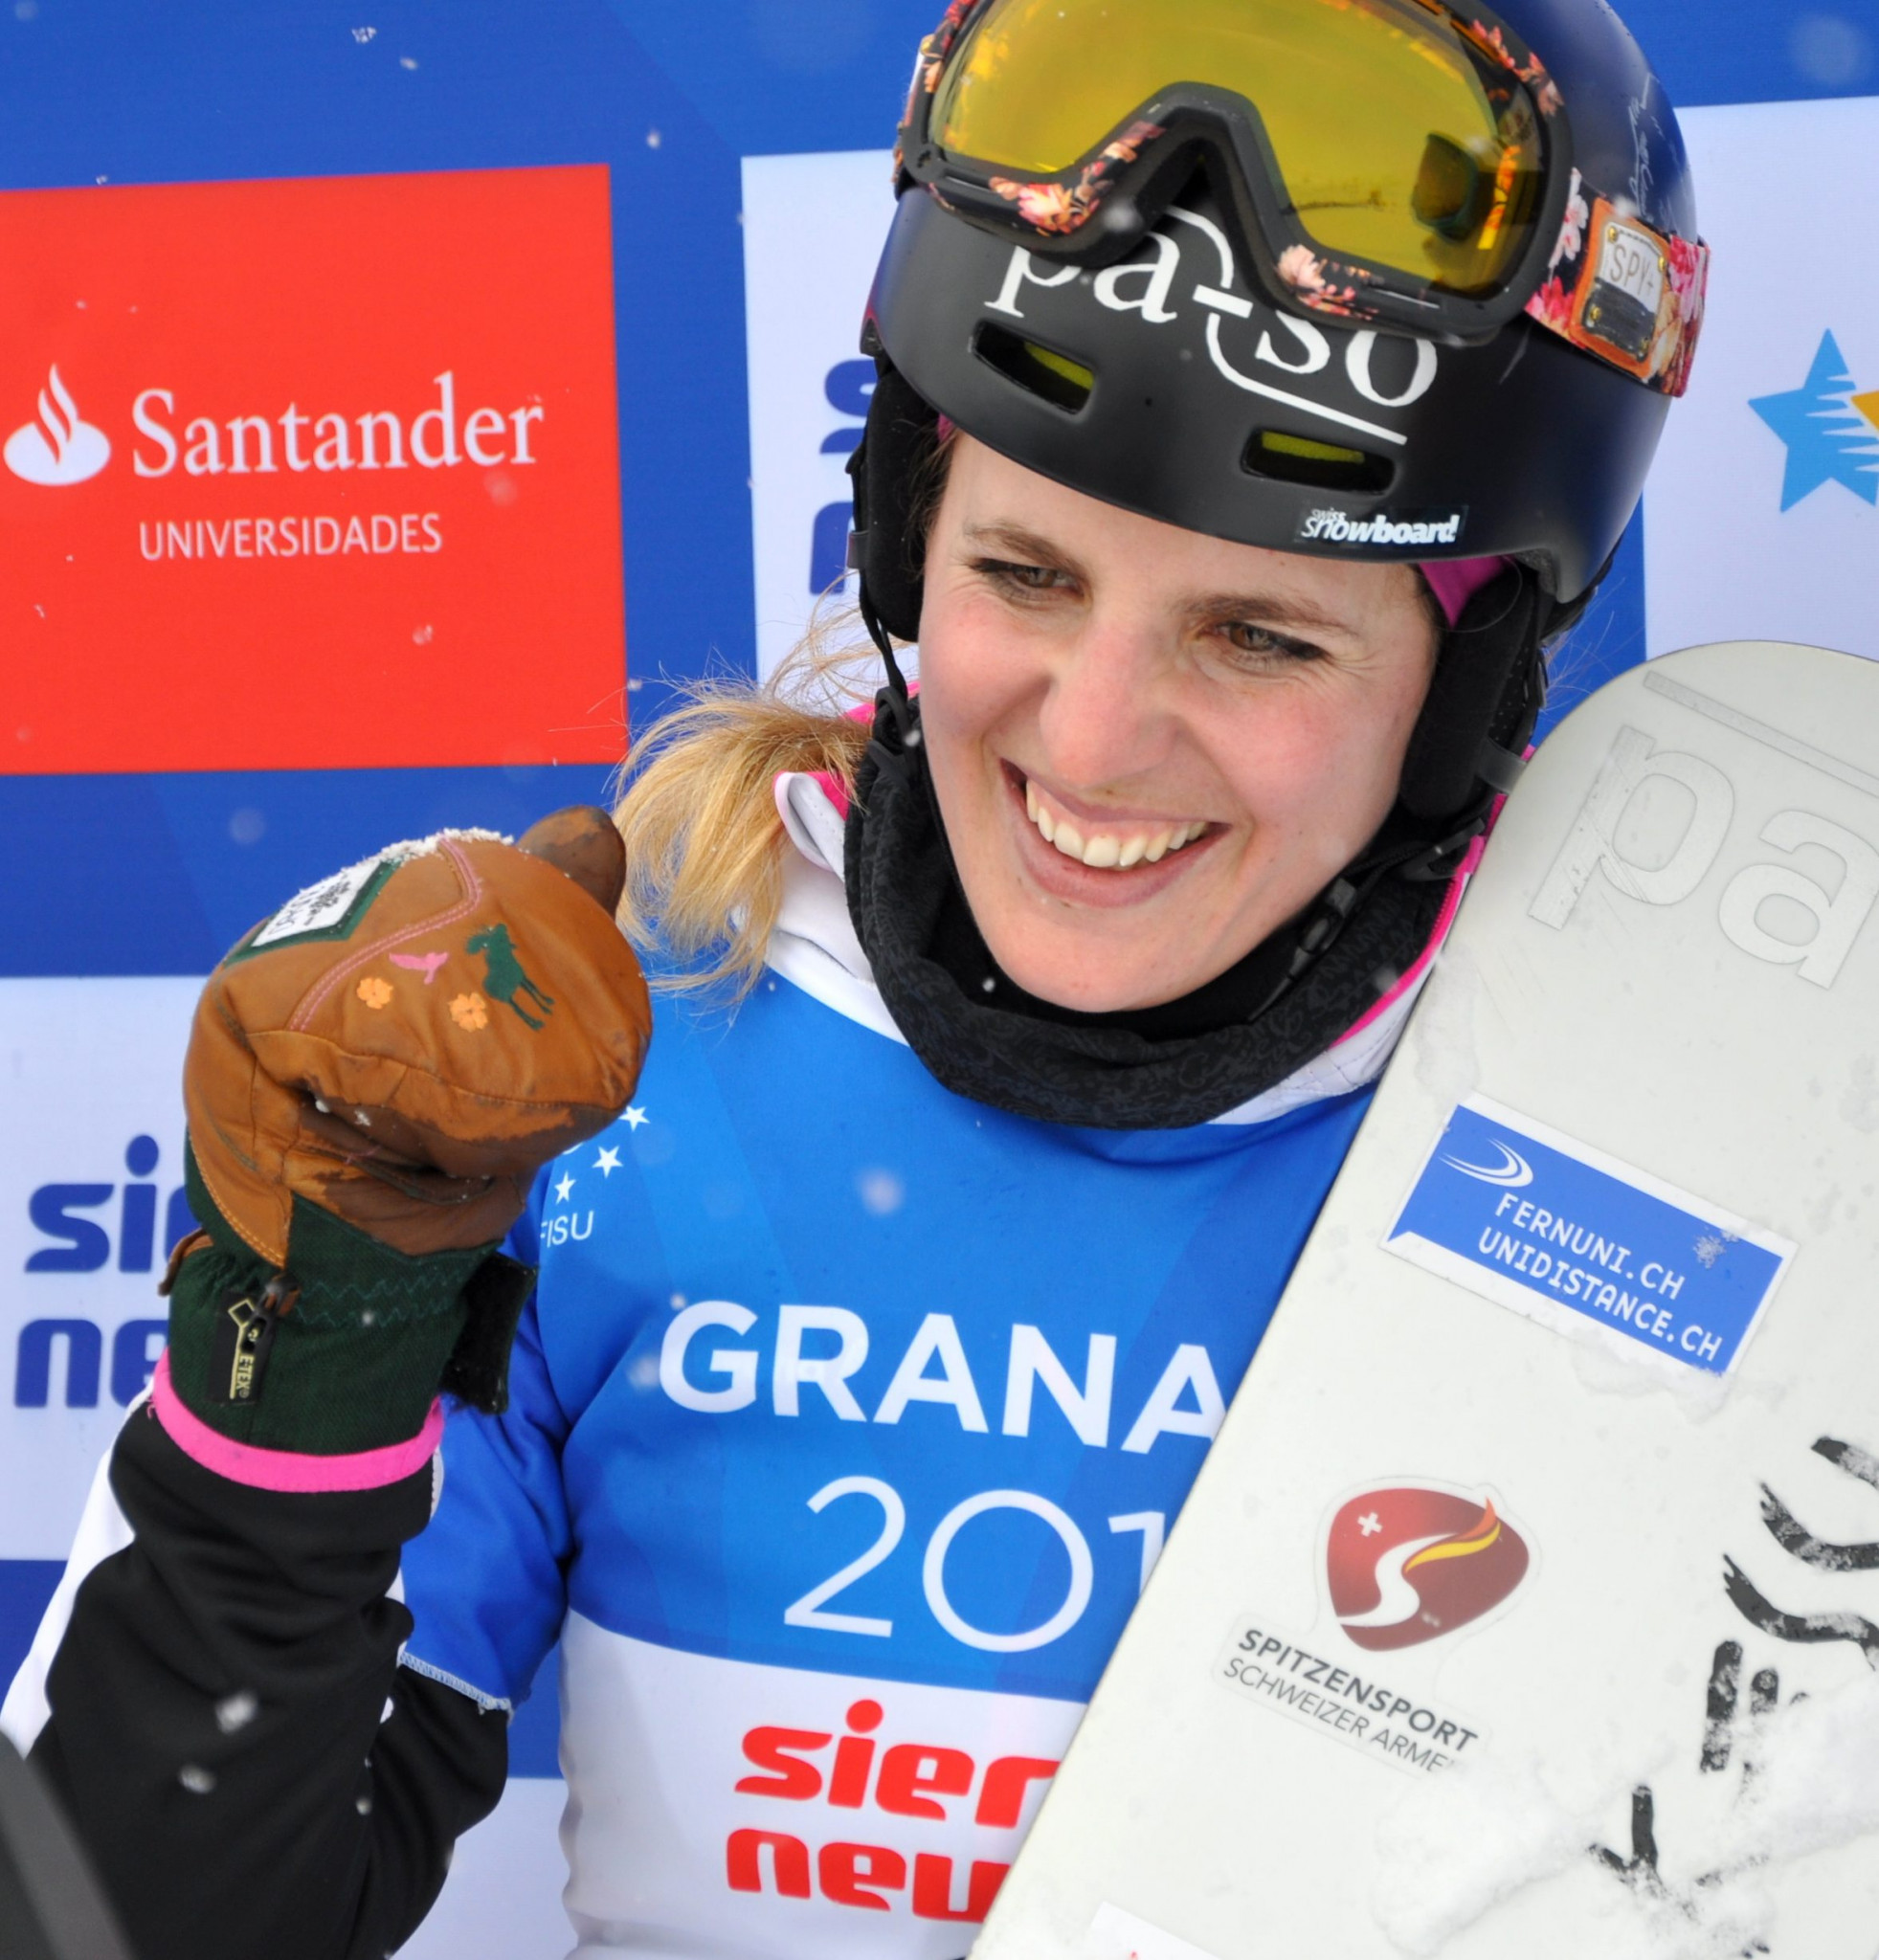 Switzerland's Patrizia Kummer celebrates her Winter Universiade gold medal in the parallel giant slalom at Granada 2015 - a year after she had won the Olympic gold medal in Sochi ©Patrizia Kummer